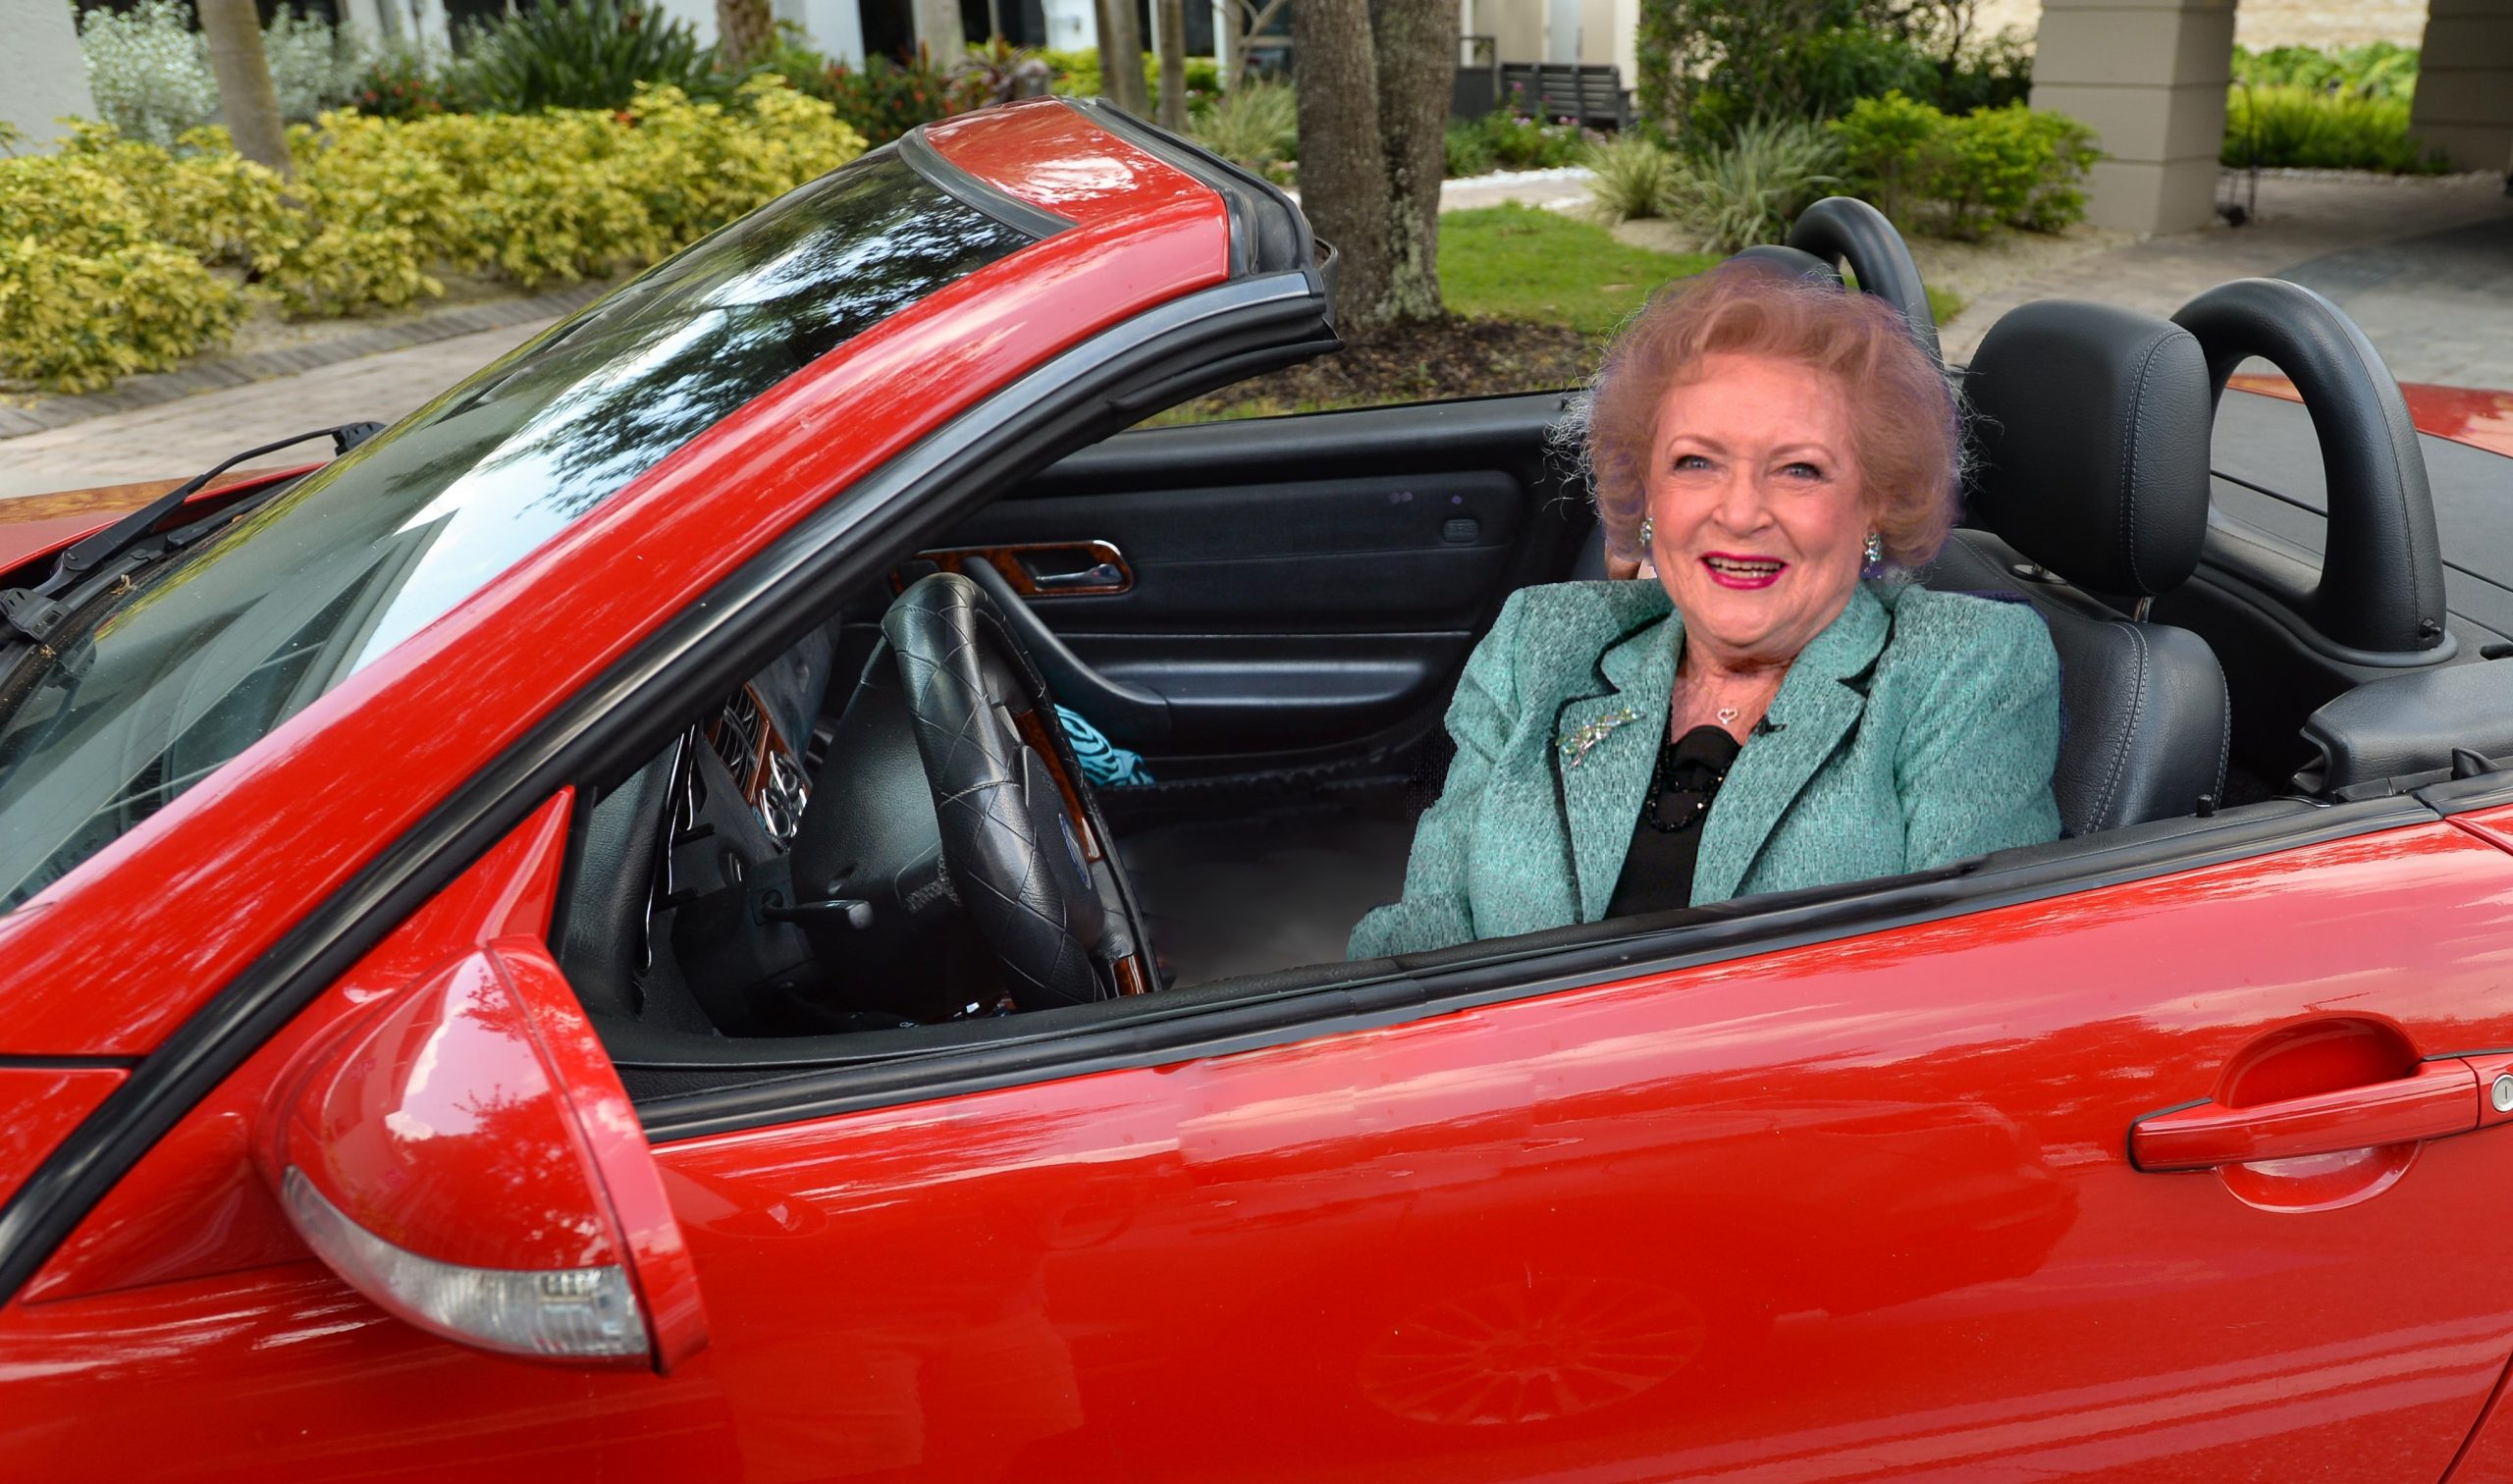 A very self-satisfied looking Betty White sitting in a red Ferrari.